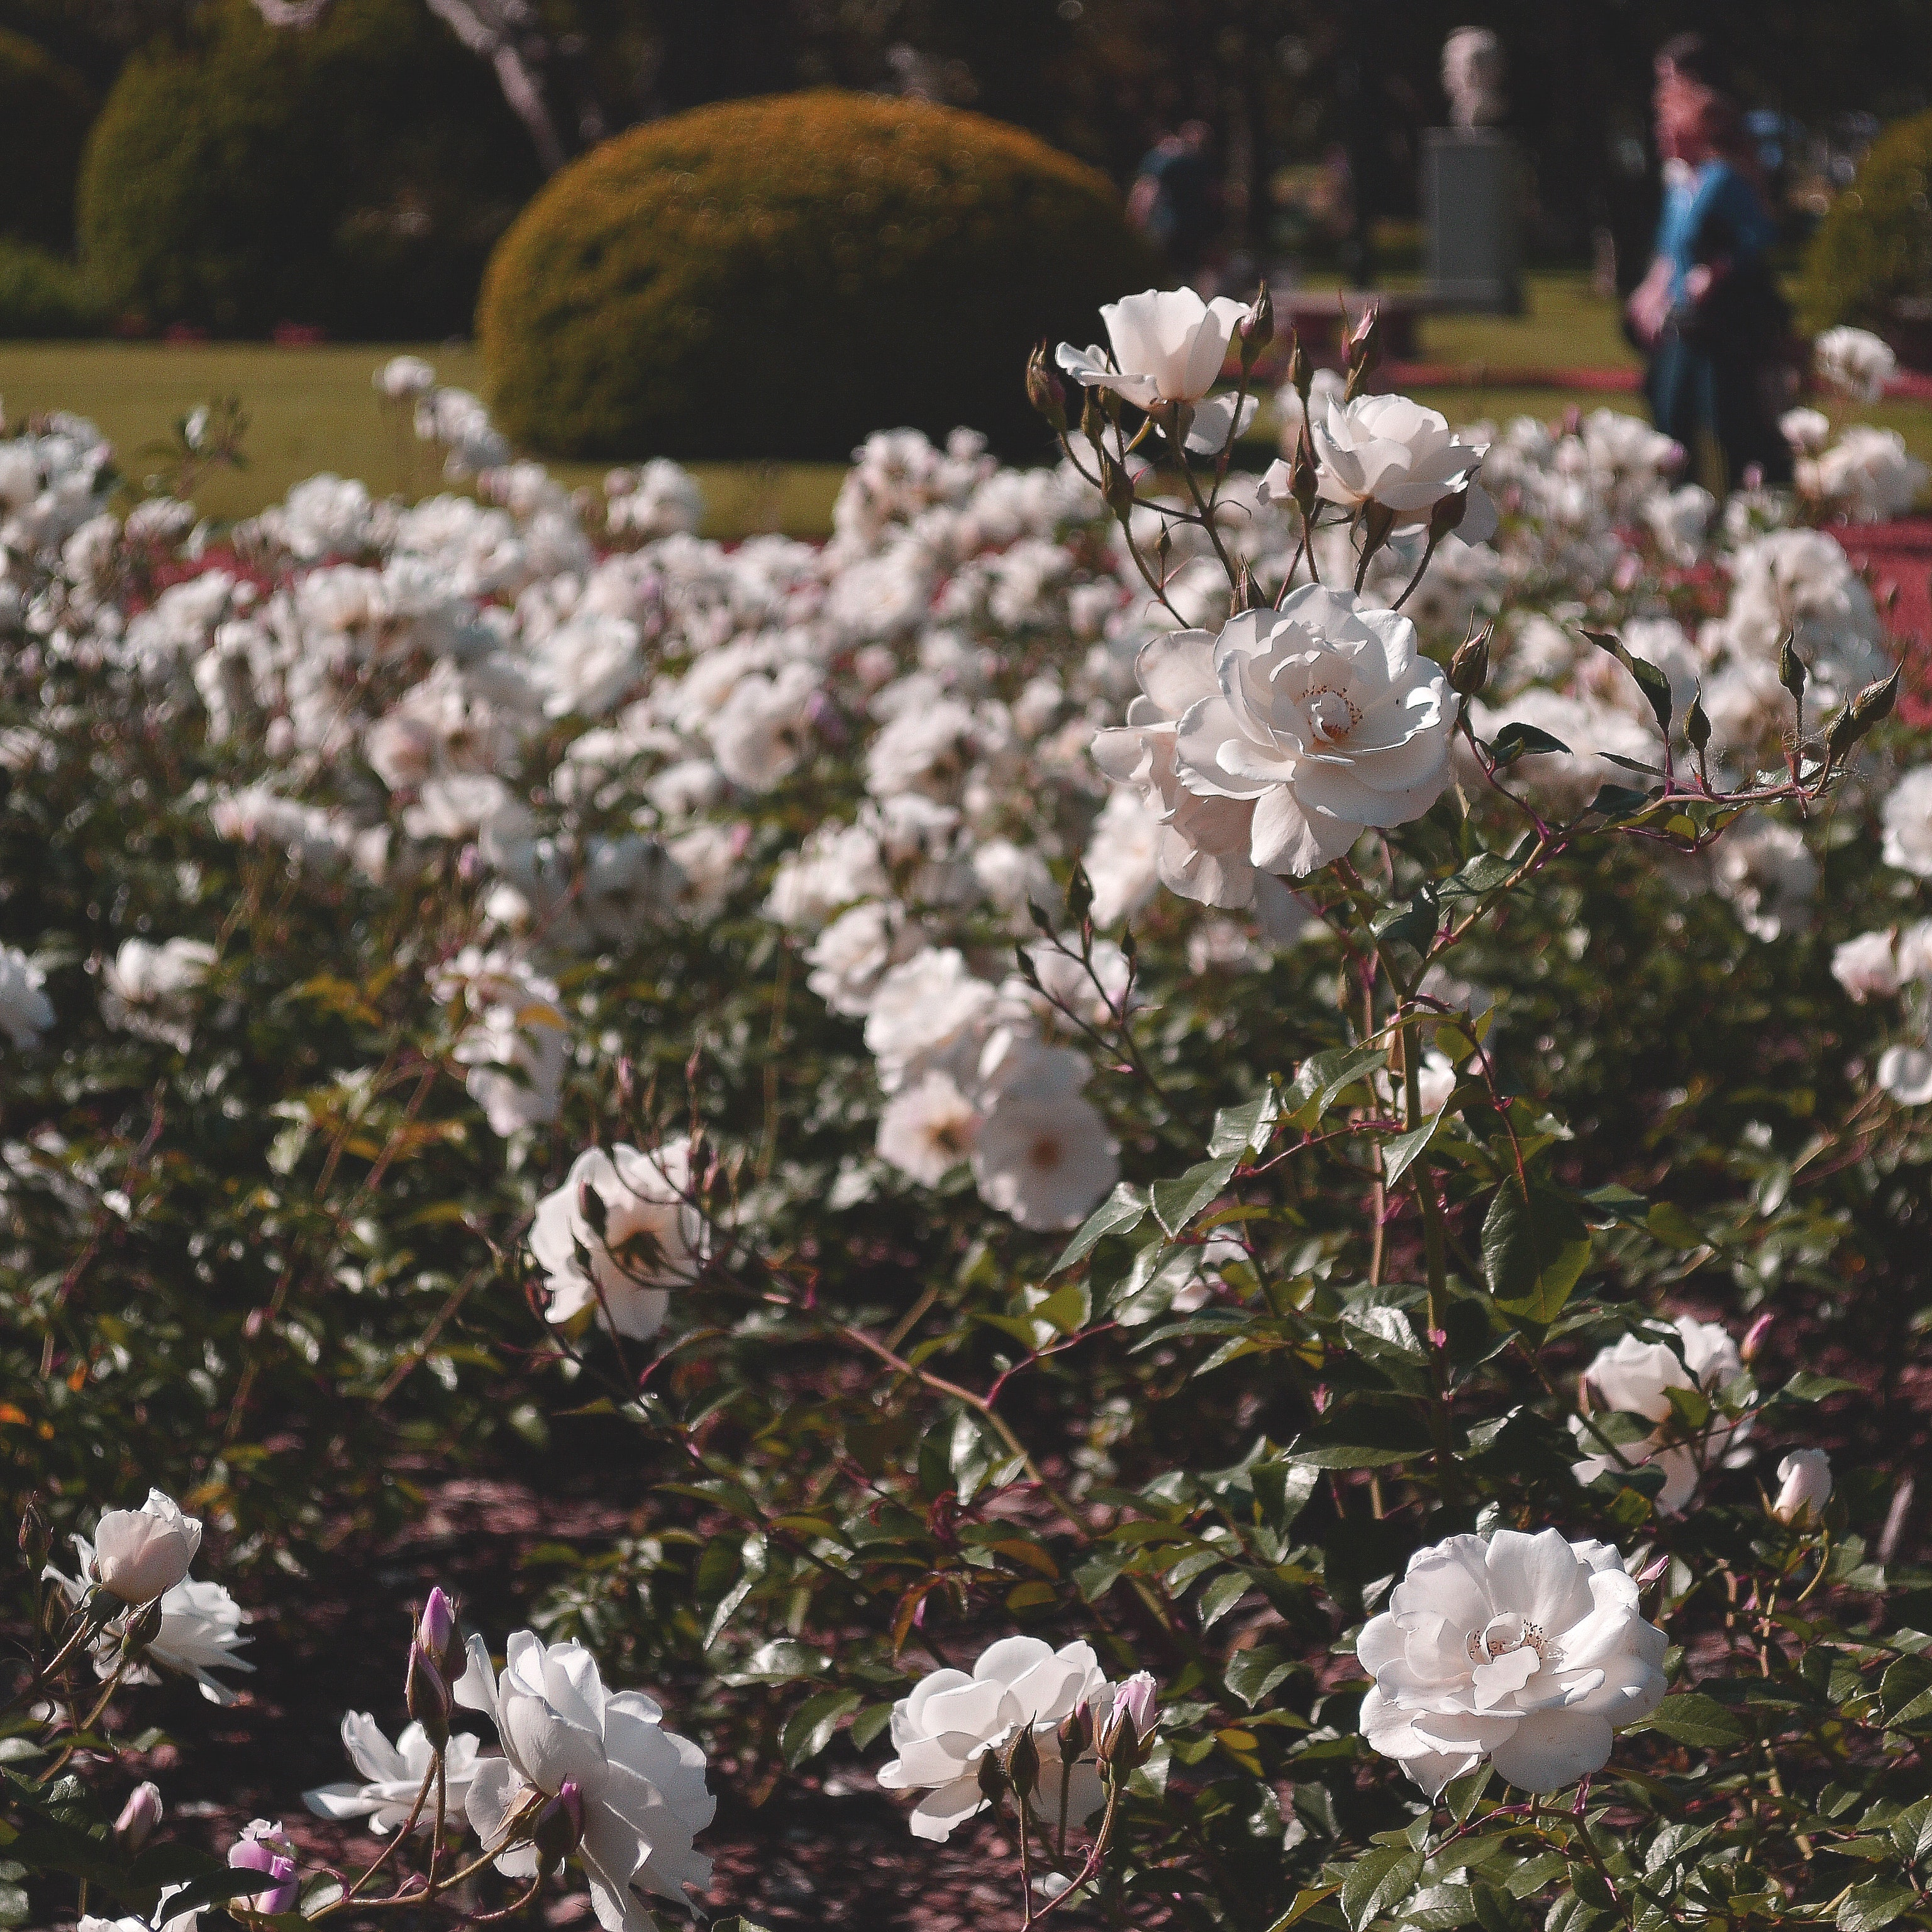 Selective Focus Photography of White Roses, People, Plants, Park, Nature, HQ Photo